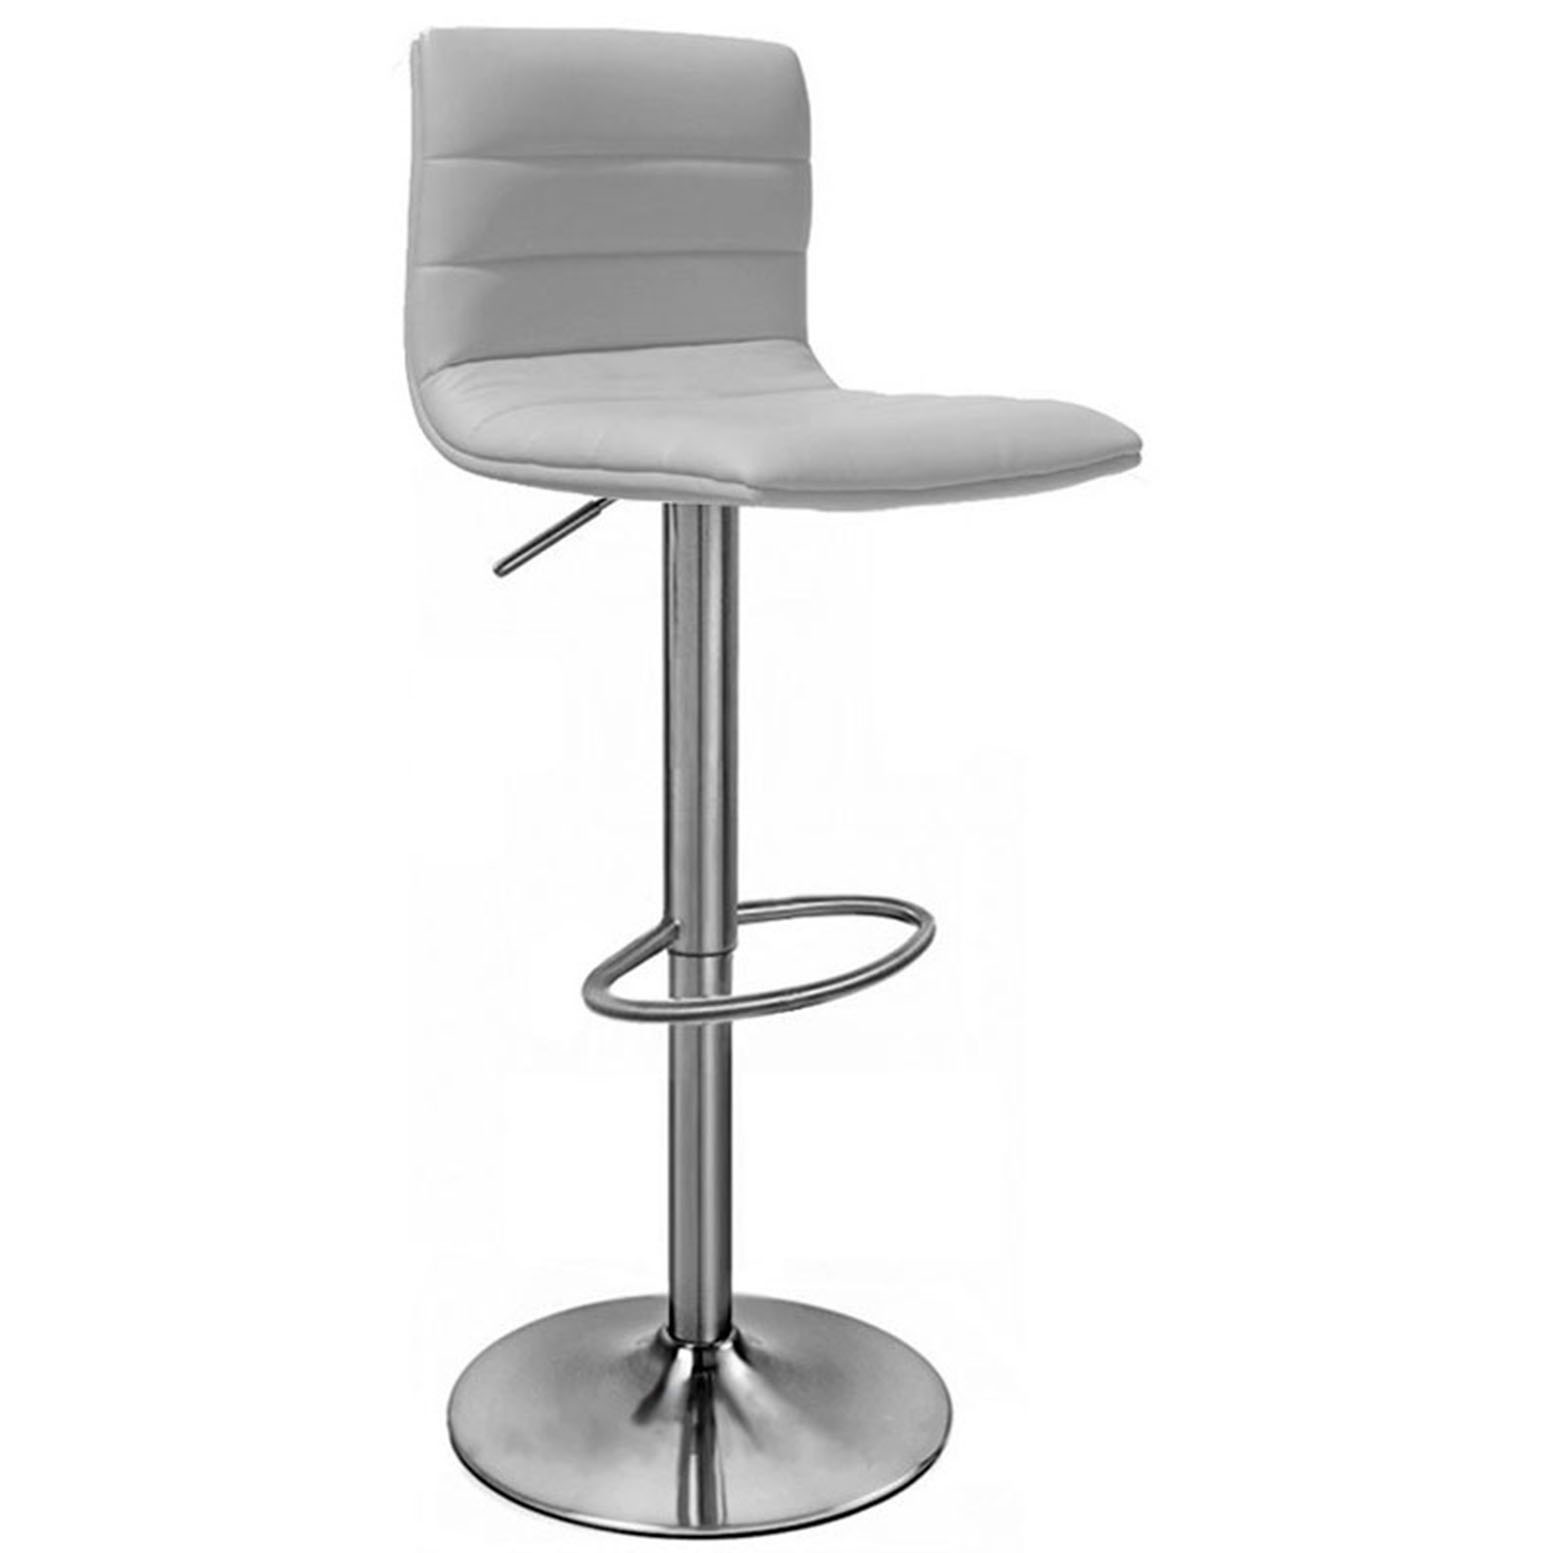 Aldo Brushed Bar Stool - Grey